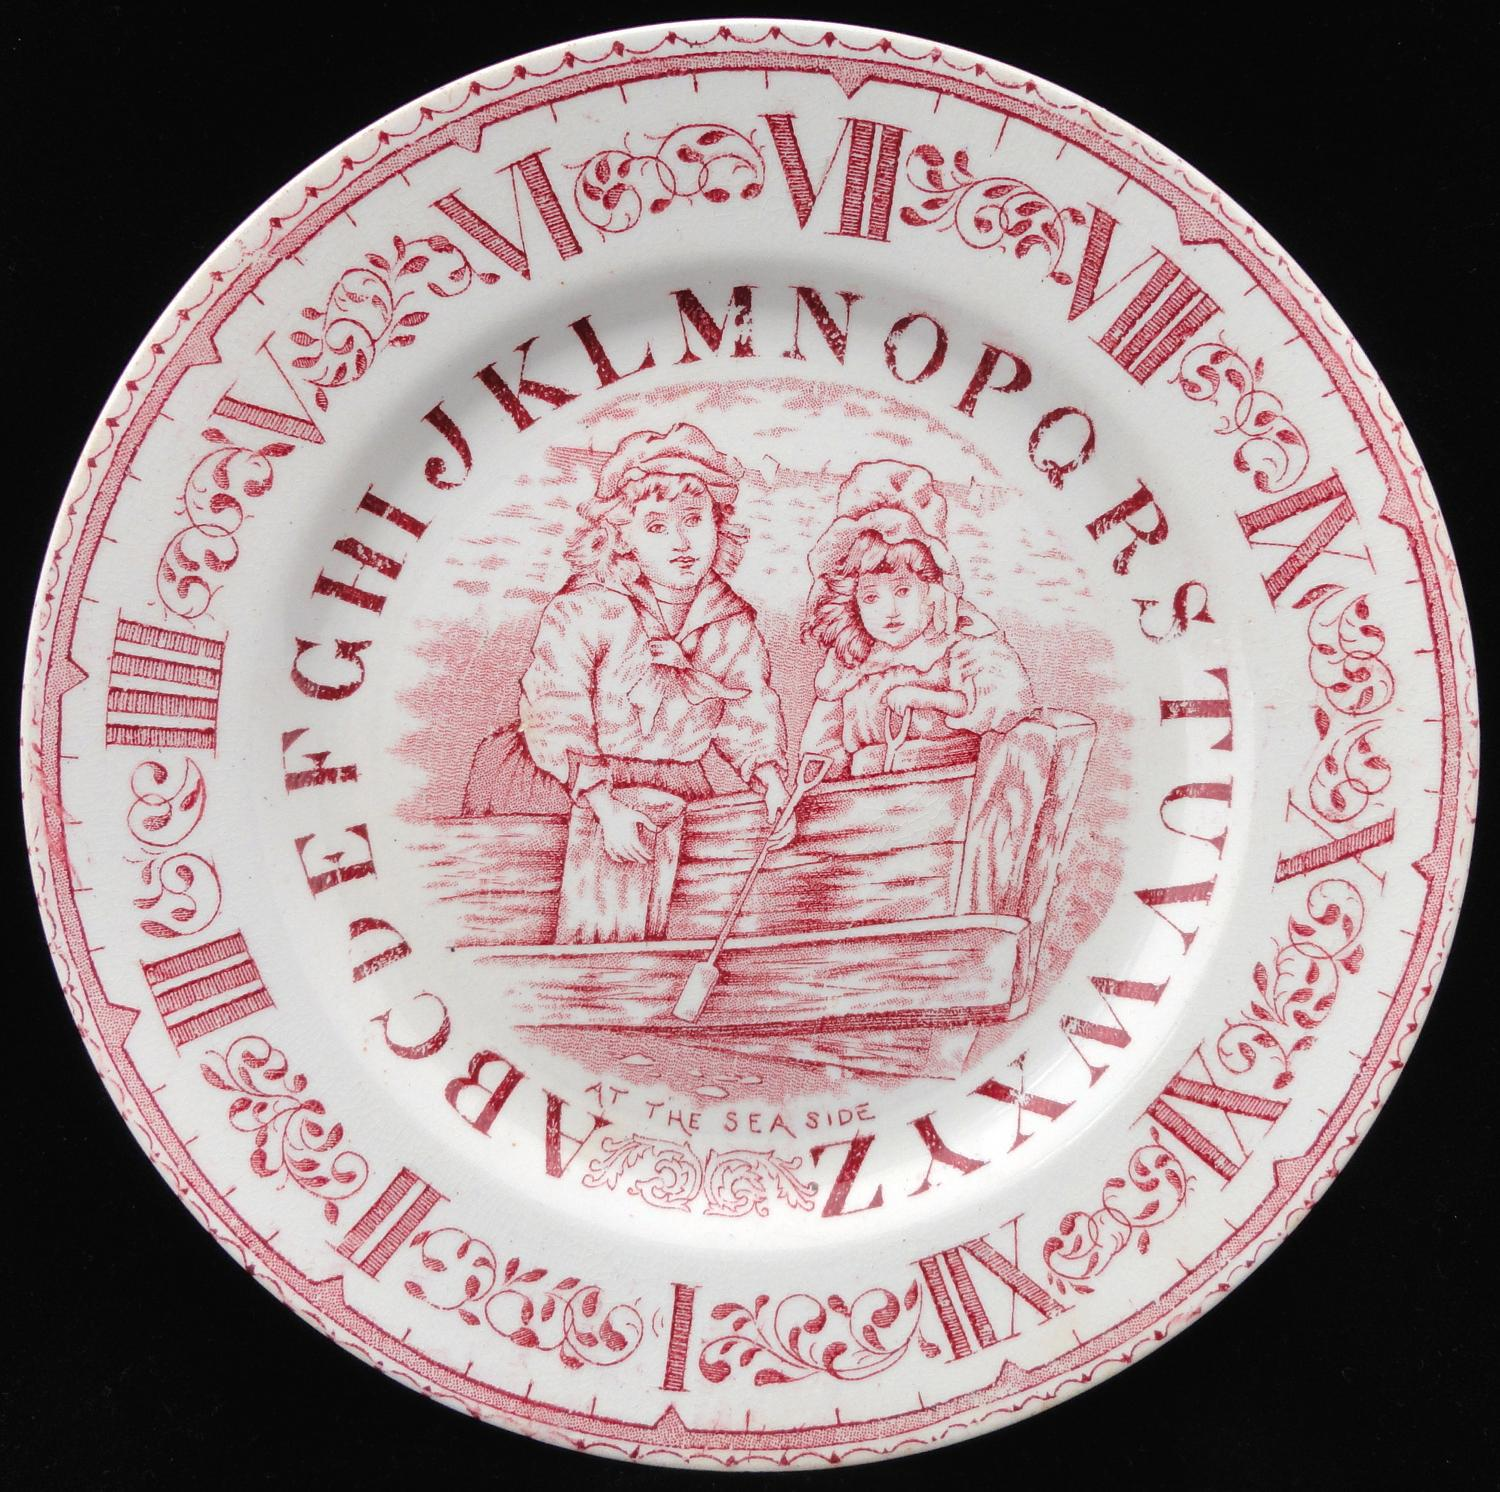 ABC RED Transfer Plate ~ Clock and Alphabet ~ At the Sea Side 1880